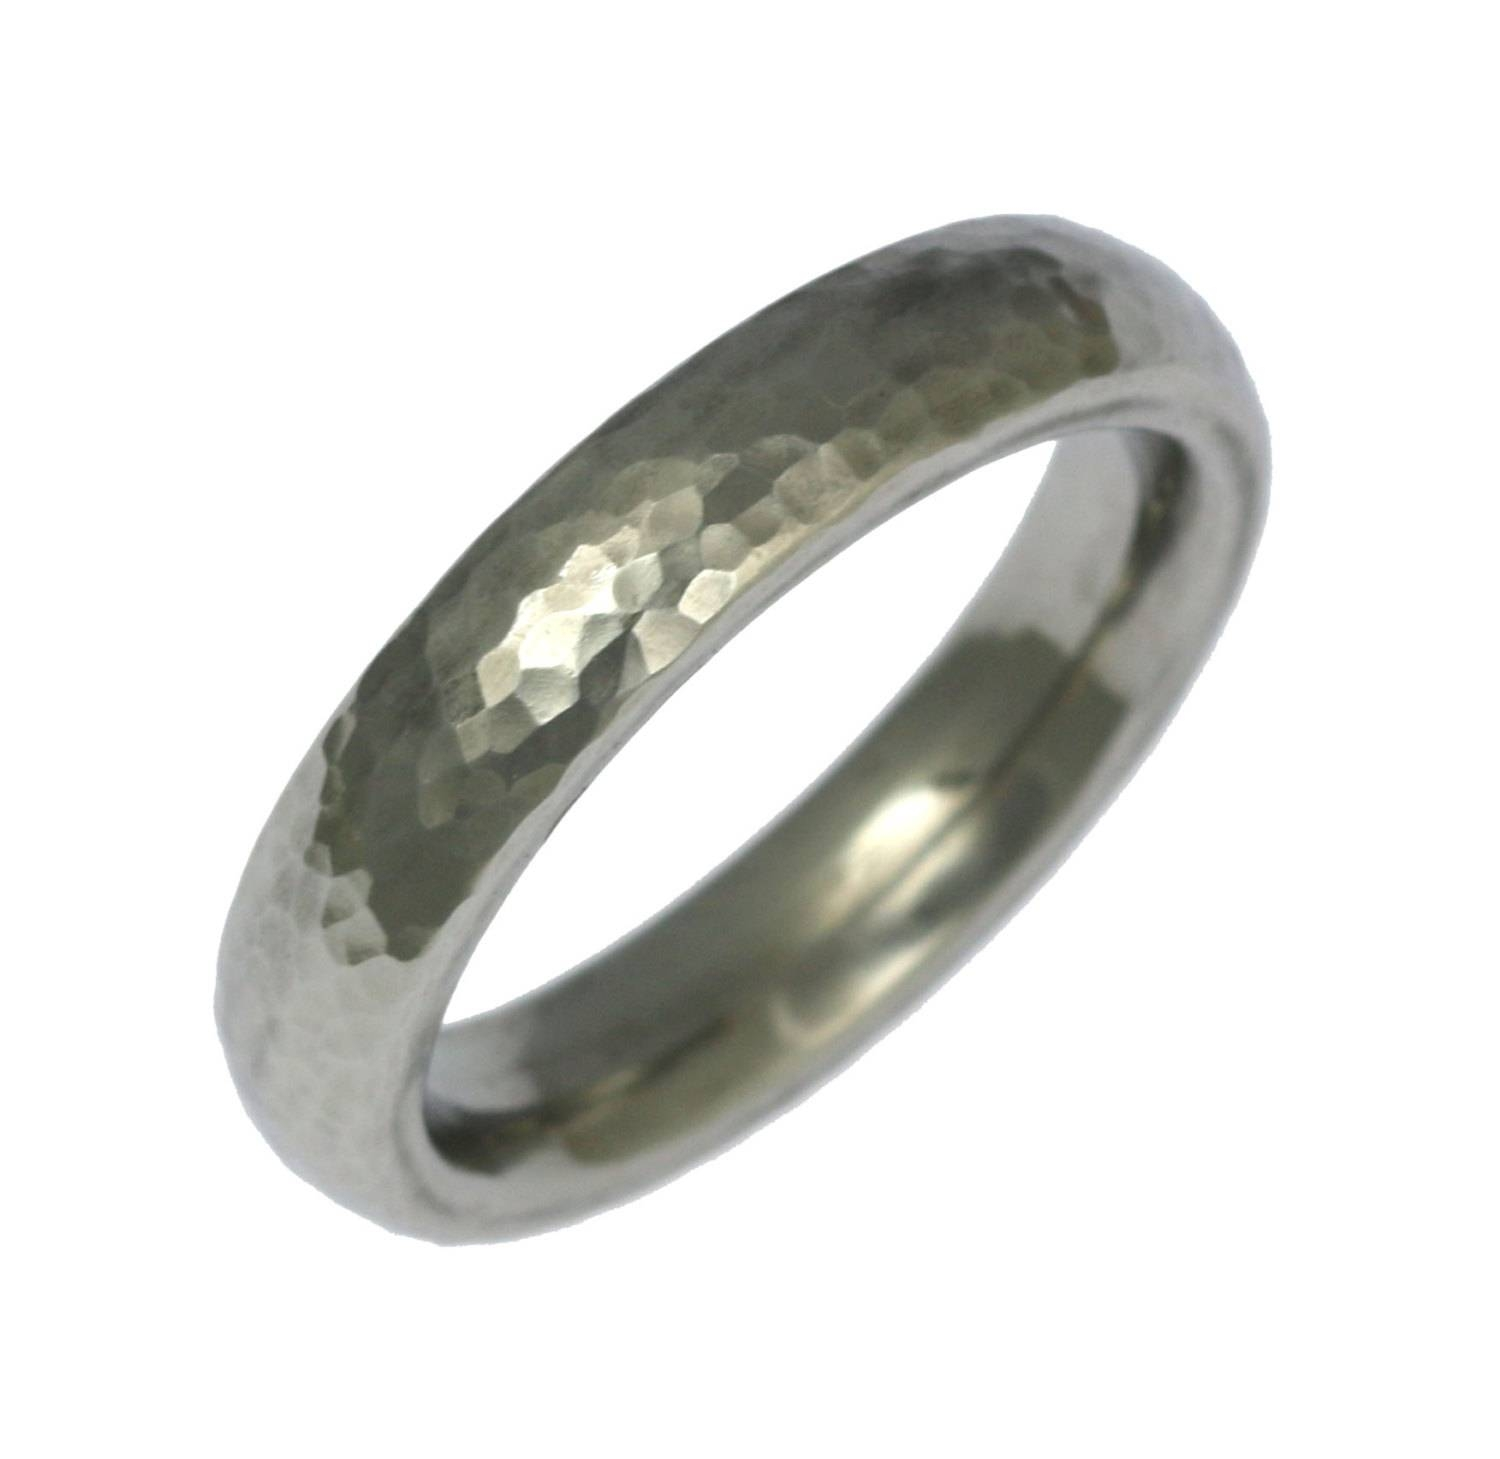 5mm Hammered Stainless Steel Mens Ring Mens Hammered Wedding Throughout Steel Wedding Bands (View 6 of 15)